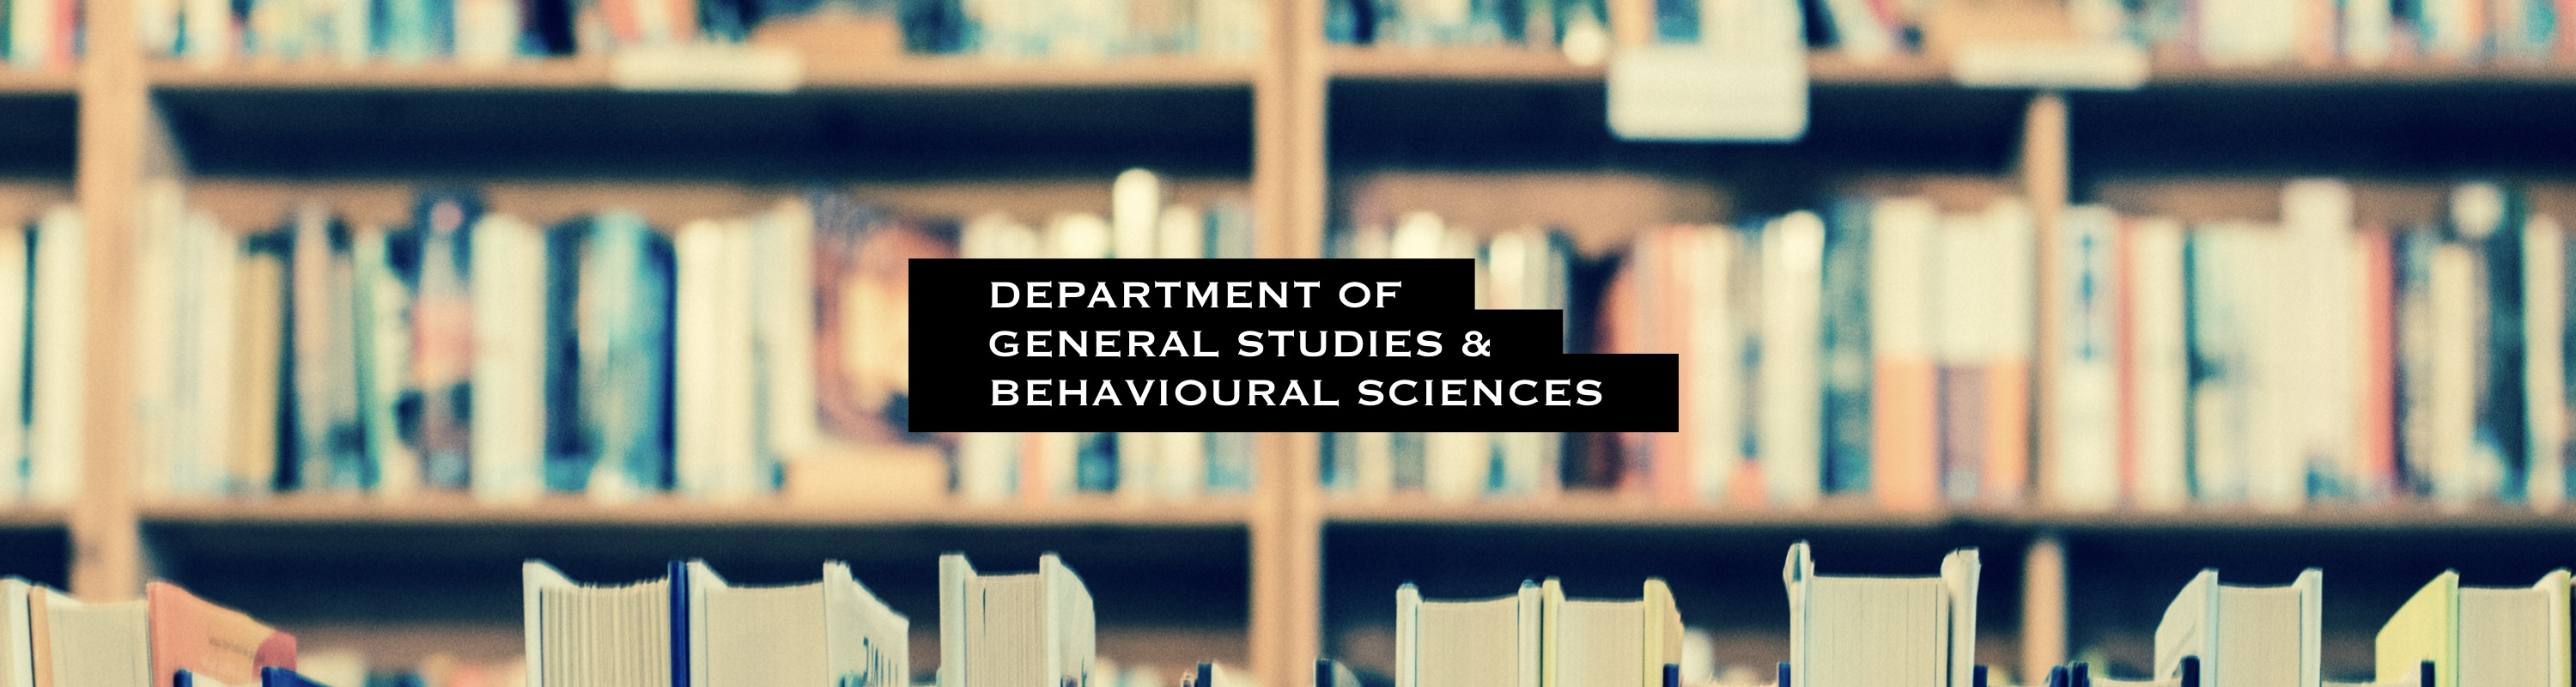 Department of General Studies and Behavioral Sciences